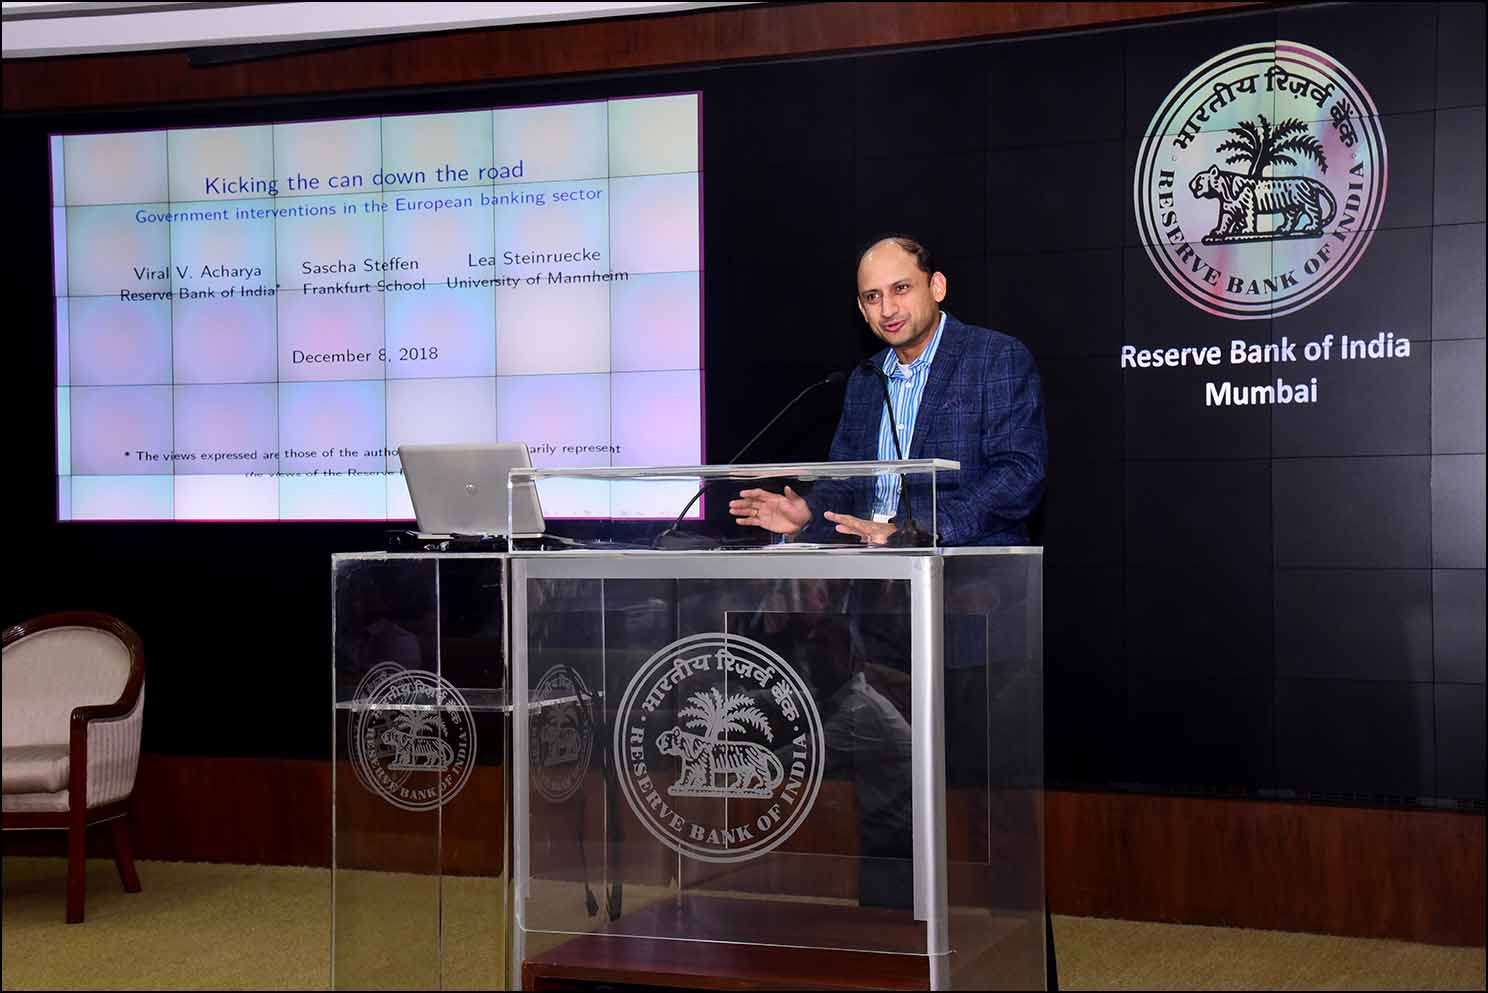 Dr. Viral Acharya, Deputy Governor, Reserve Bank of India